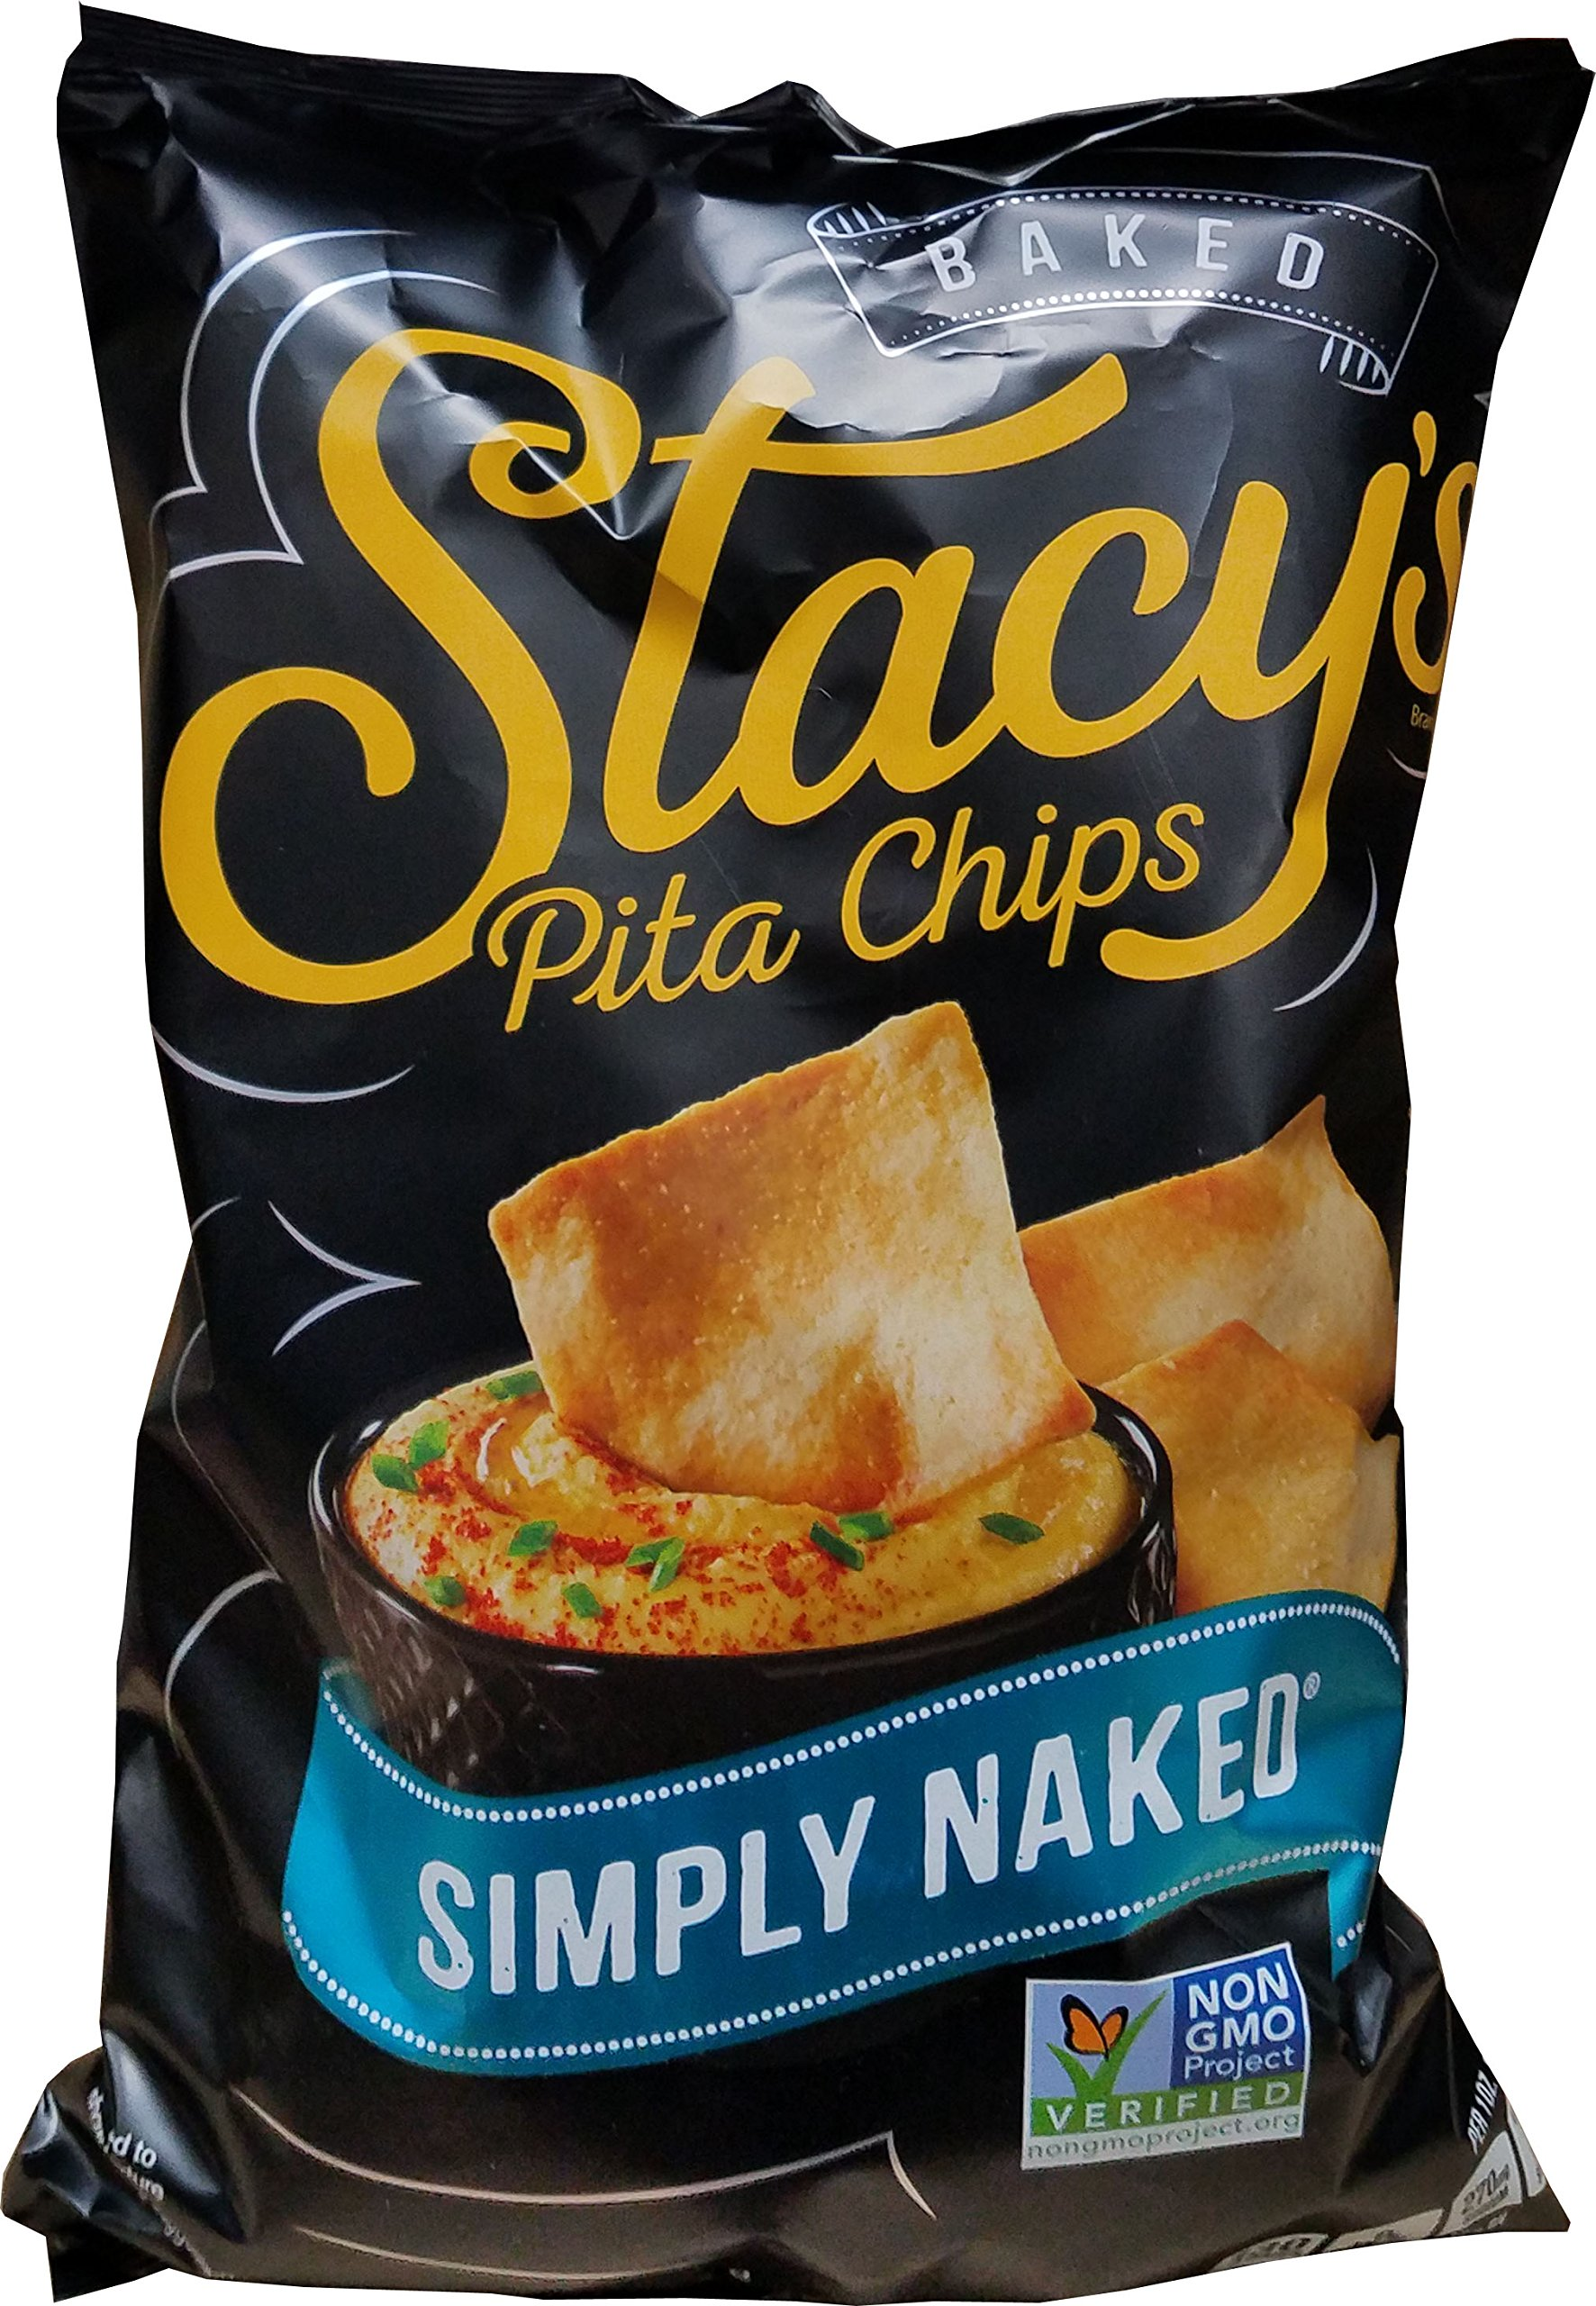 Stacy's Naked Pita Chips Natural, 28 Oz by Stacy's